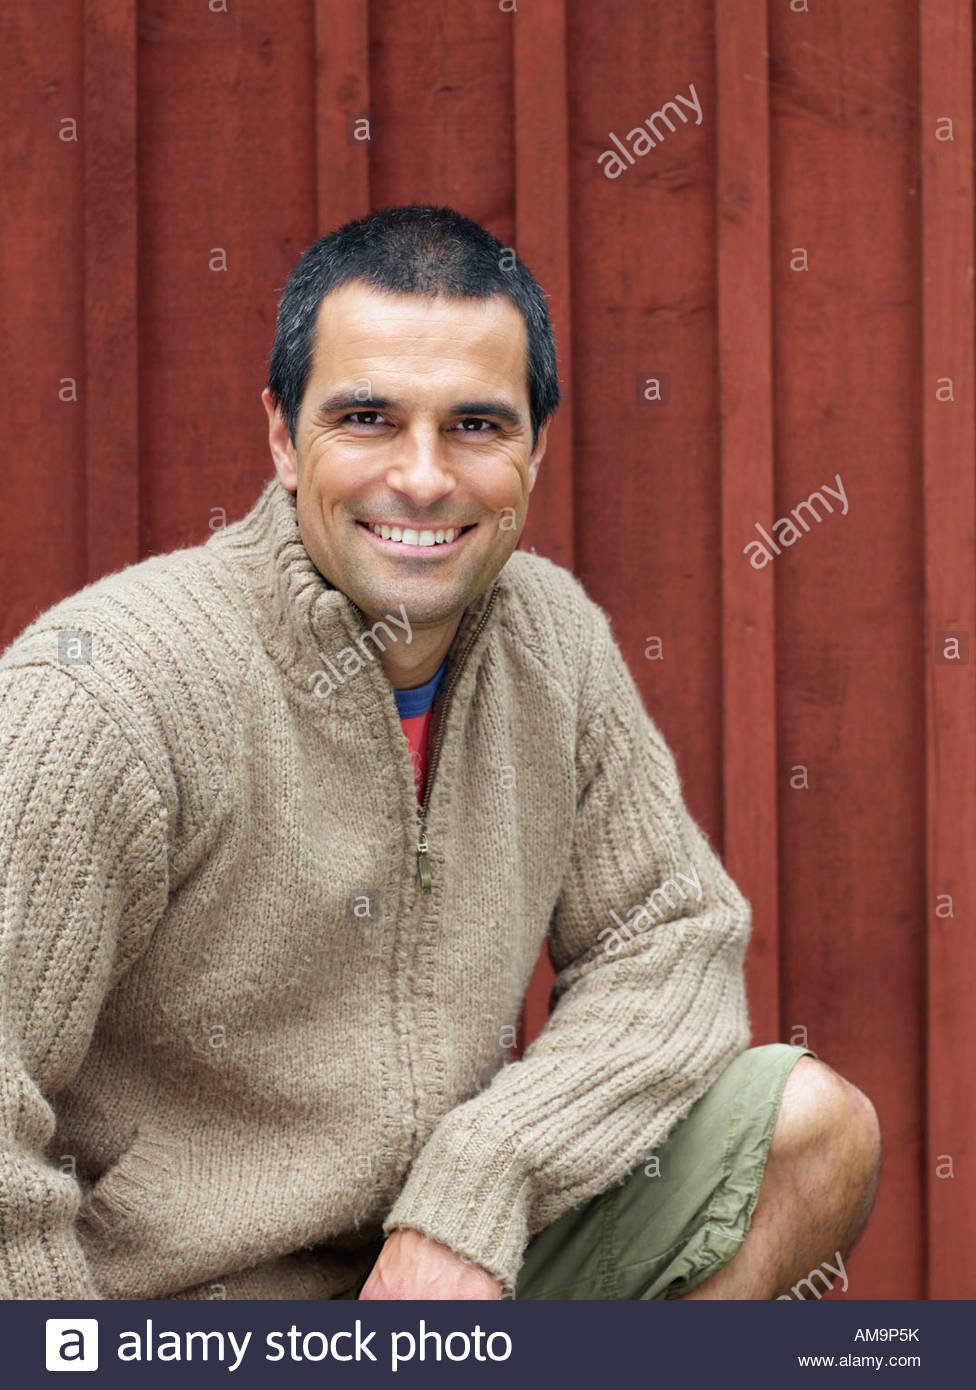 Man crouching in front of red wall smiling. Stock Photo